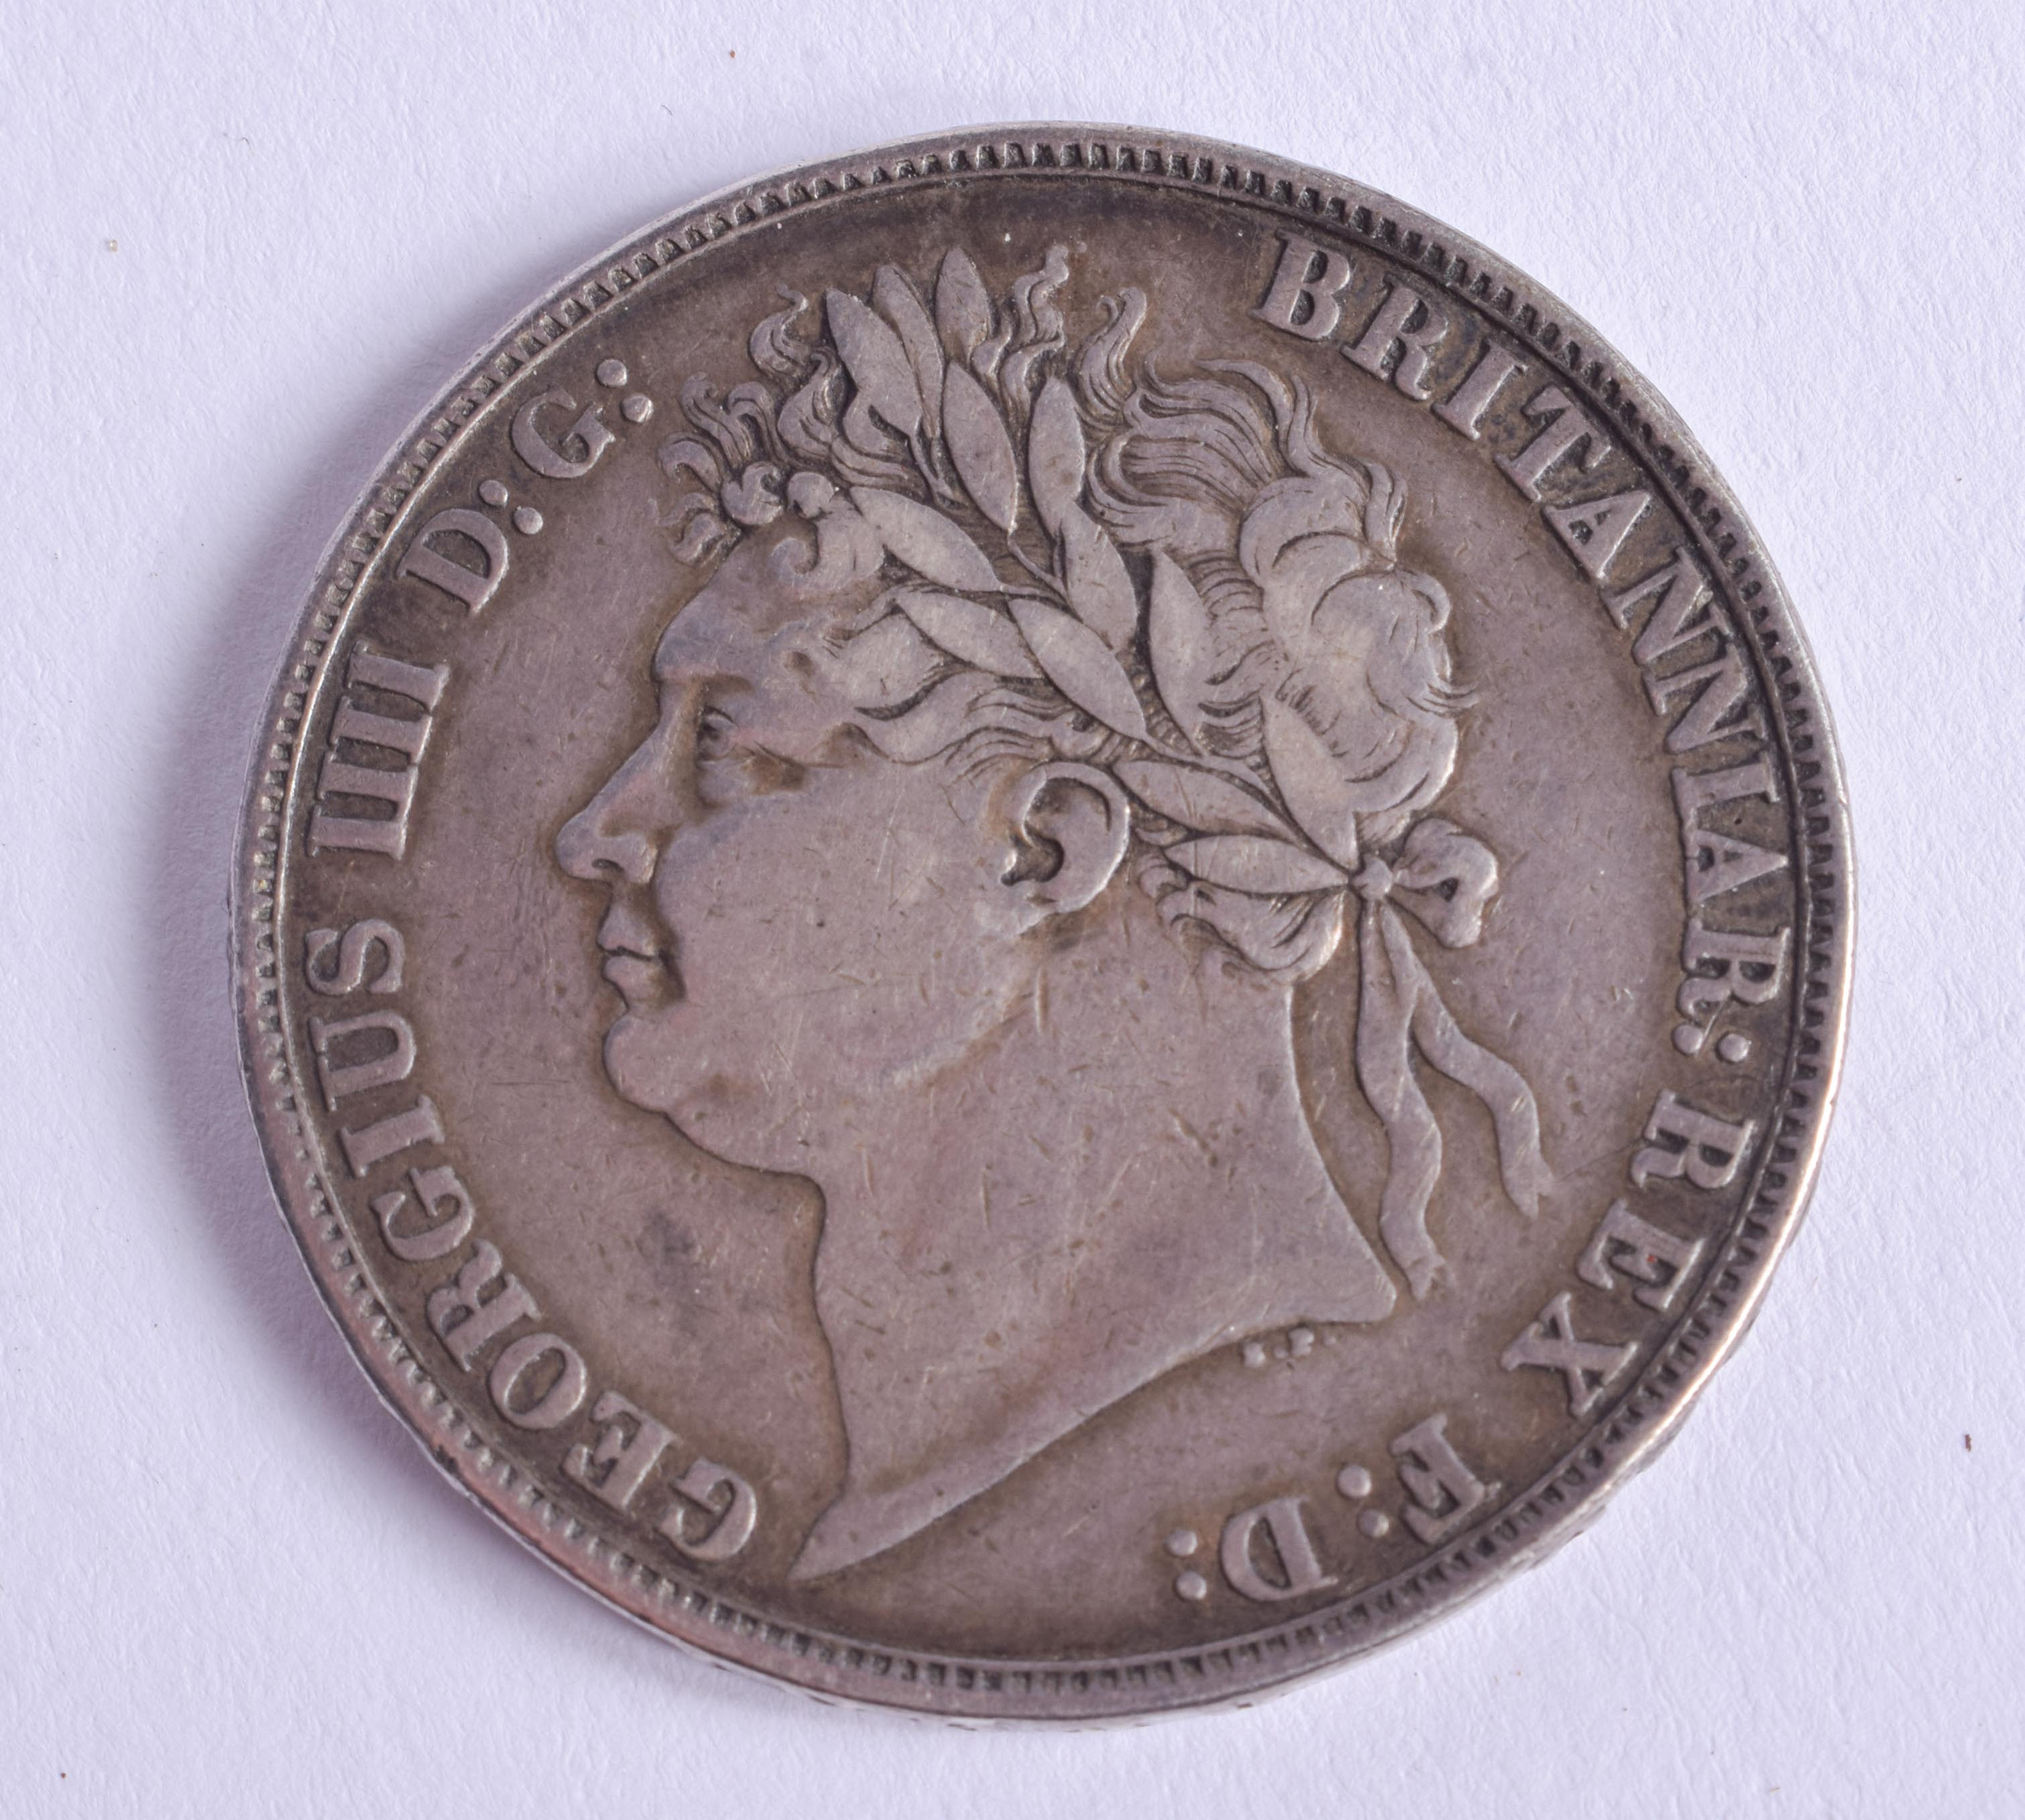 A GEORGE IV 1821 SILVER CROWN. - Image 2 of 2